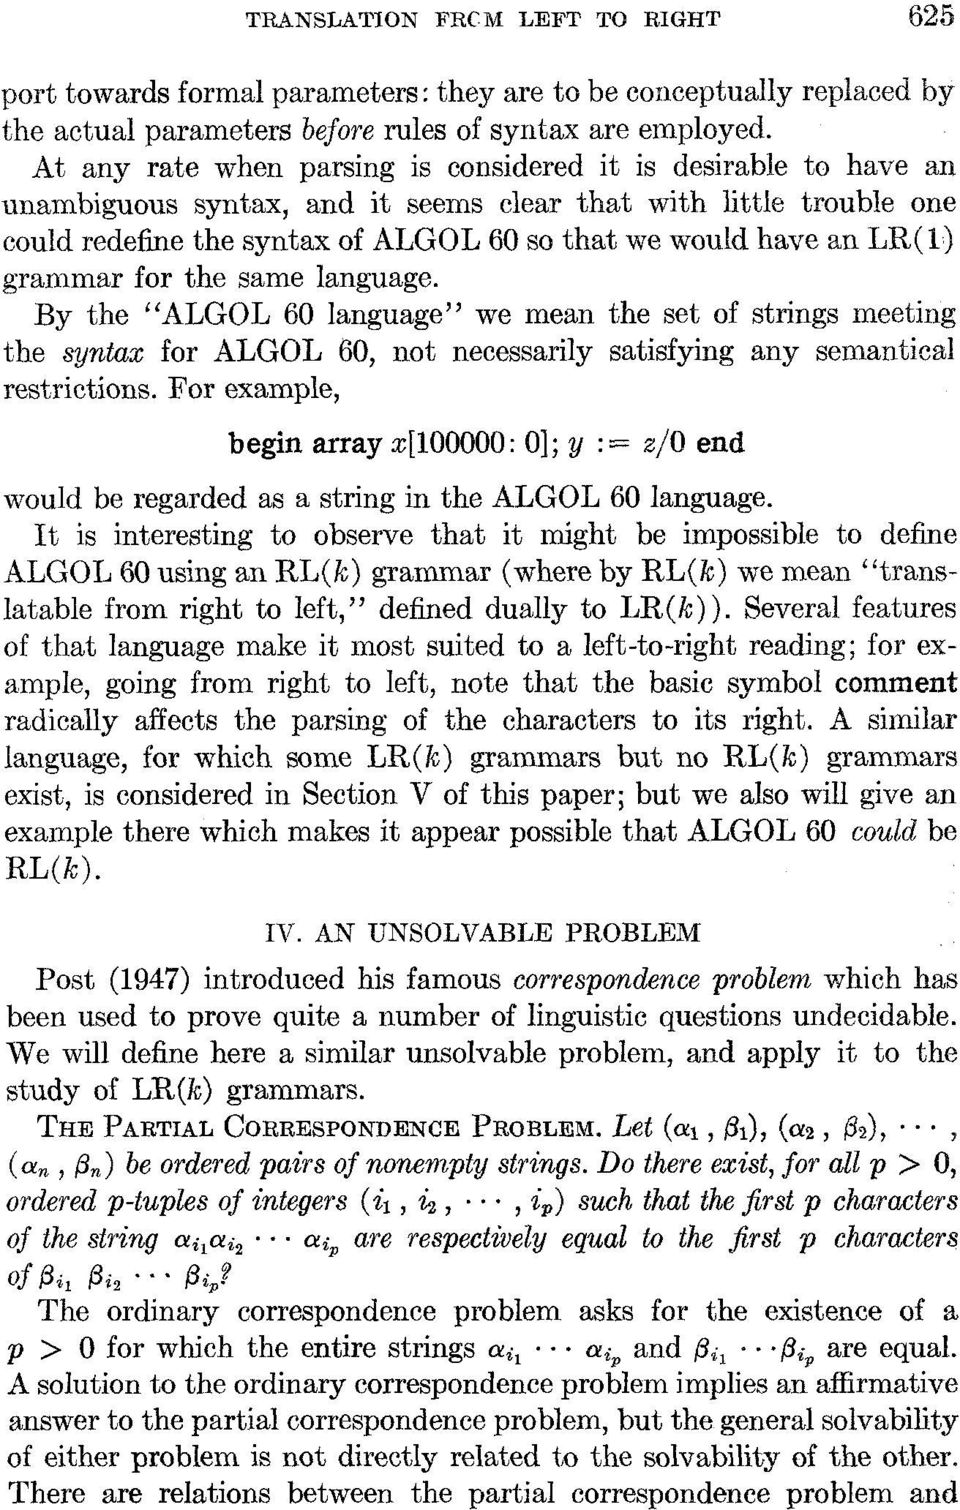 "LR(1) grammar for the same language. By the ""ALGOL 60 language"" we mean the set of strings meeting the syntax for ALGOL 60, not necessarily satisfying any semantical restrictions."